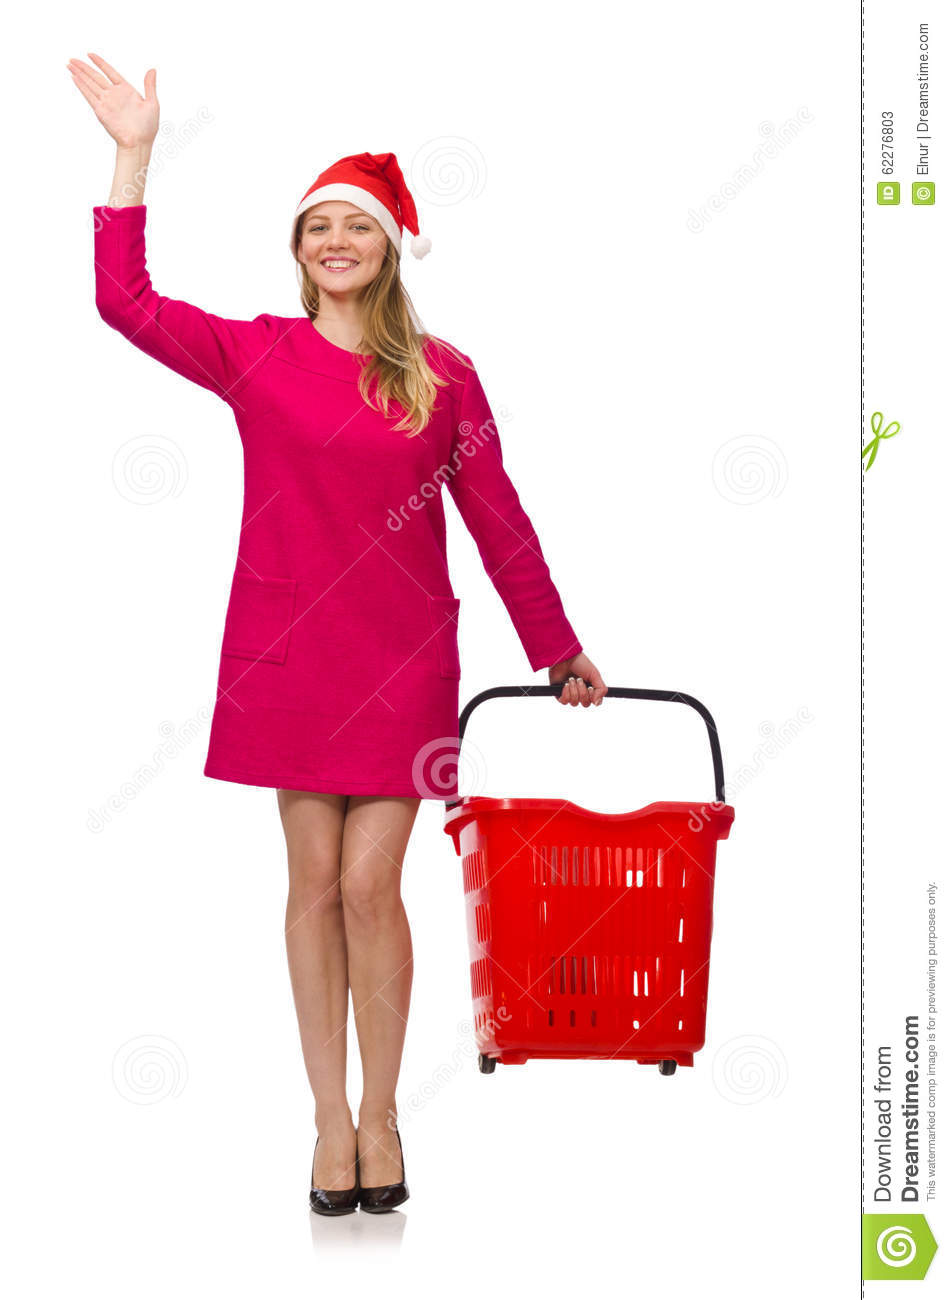 The Young Woman In Christmas Shopping Concept Stock Photo